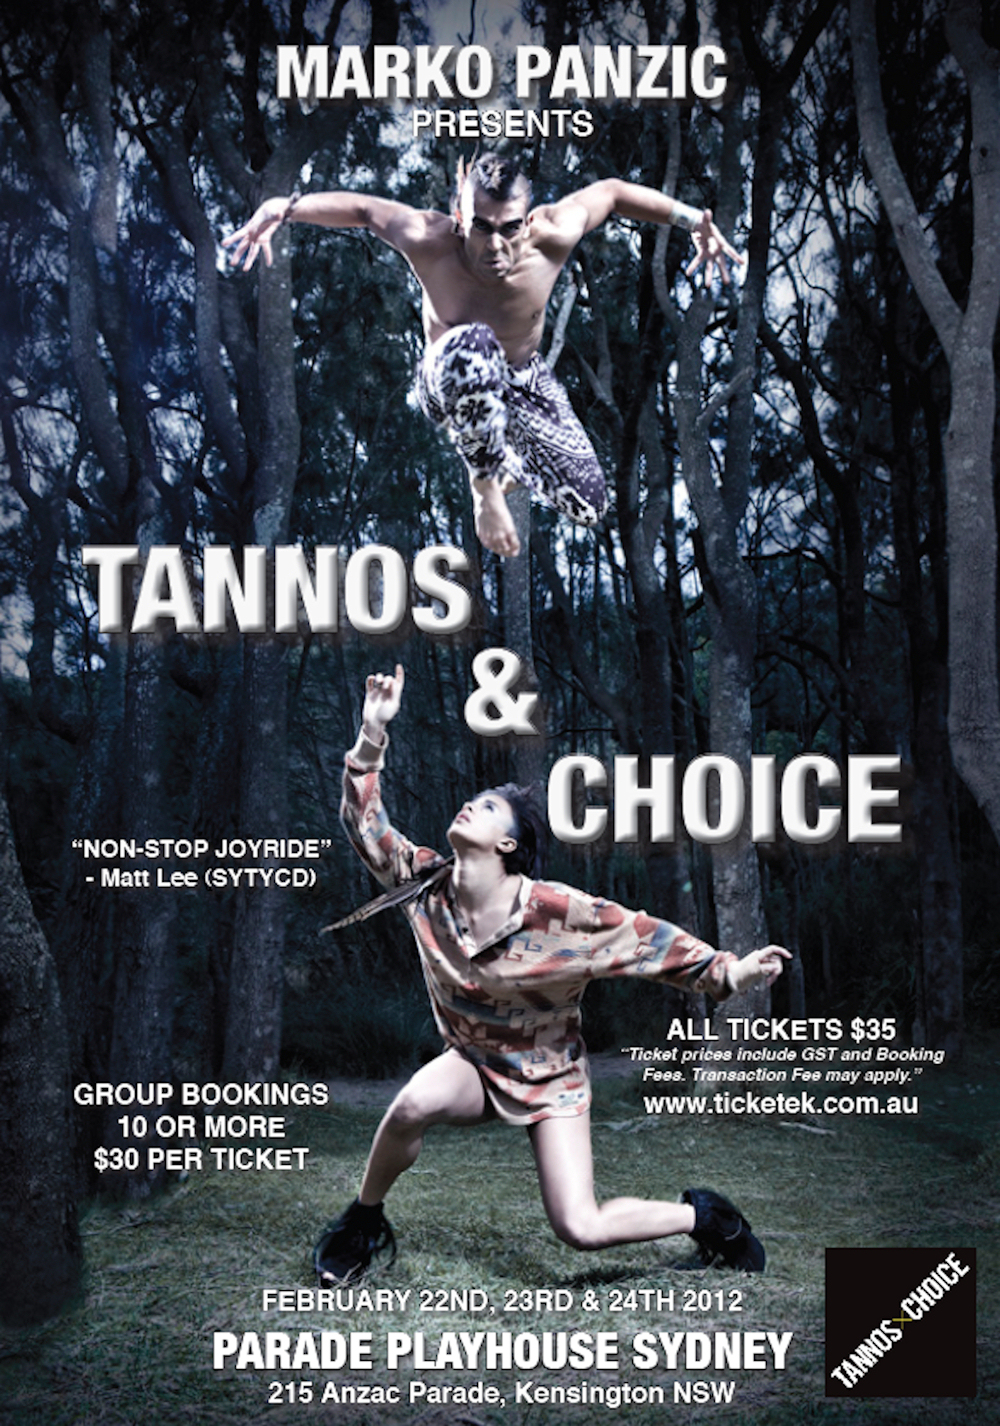 TANNOS & CHOICE